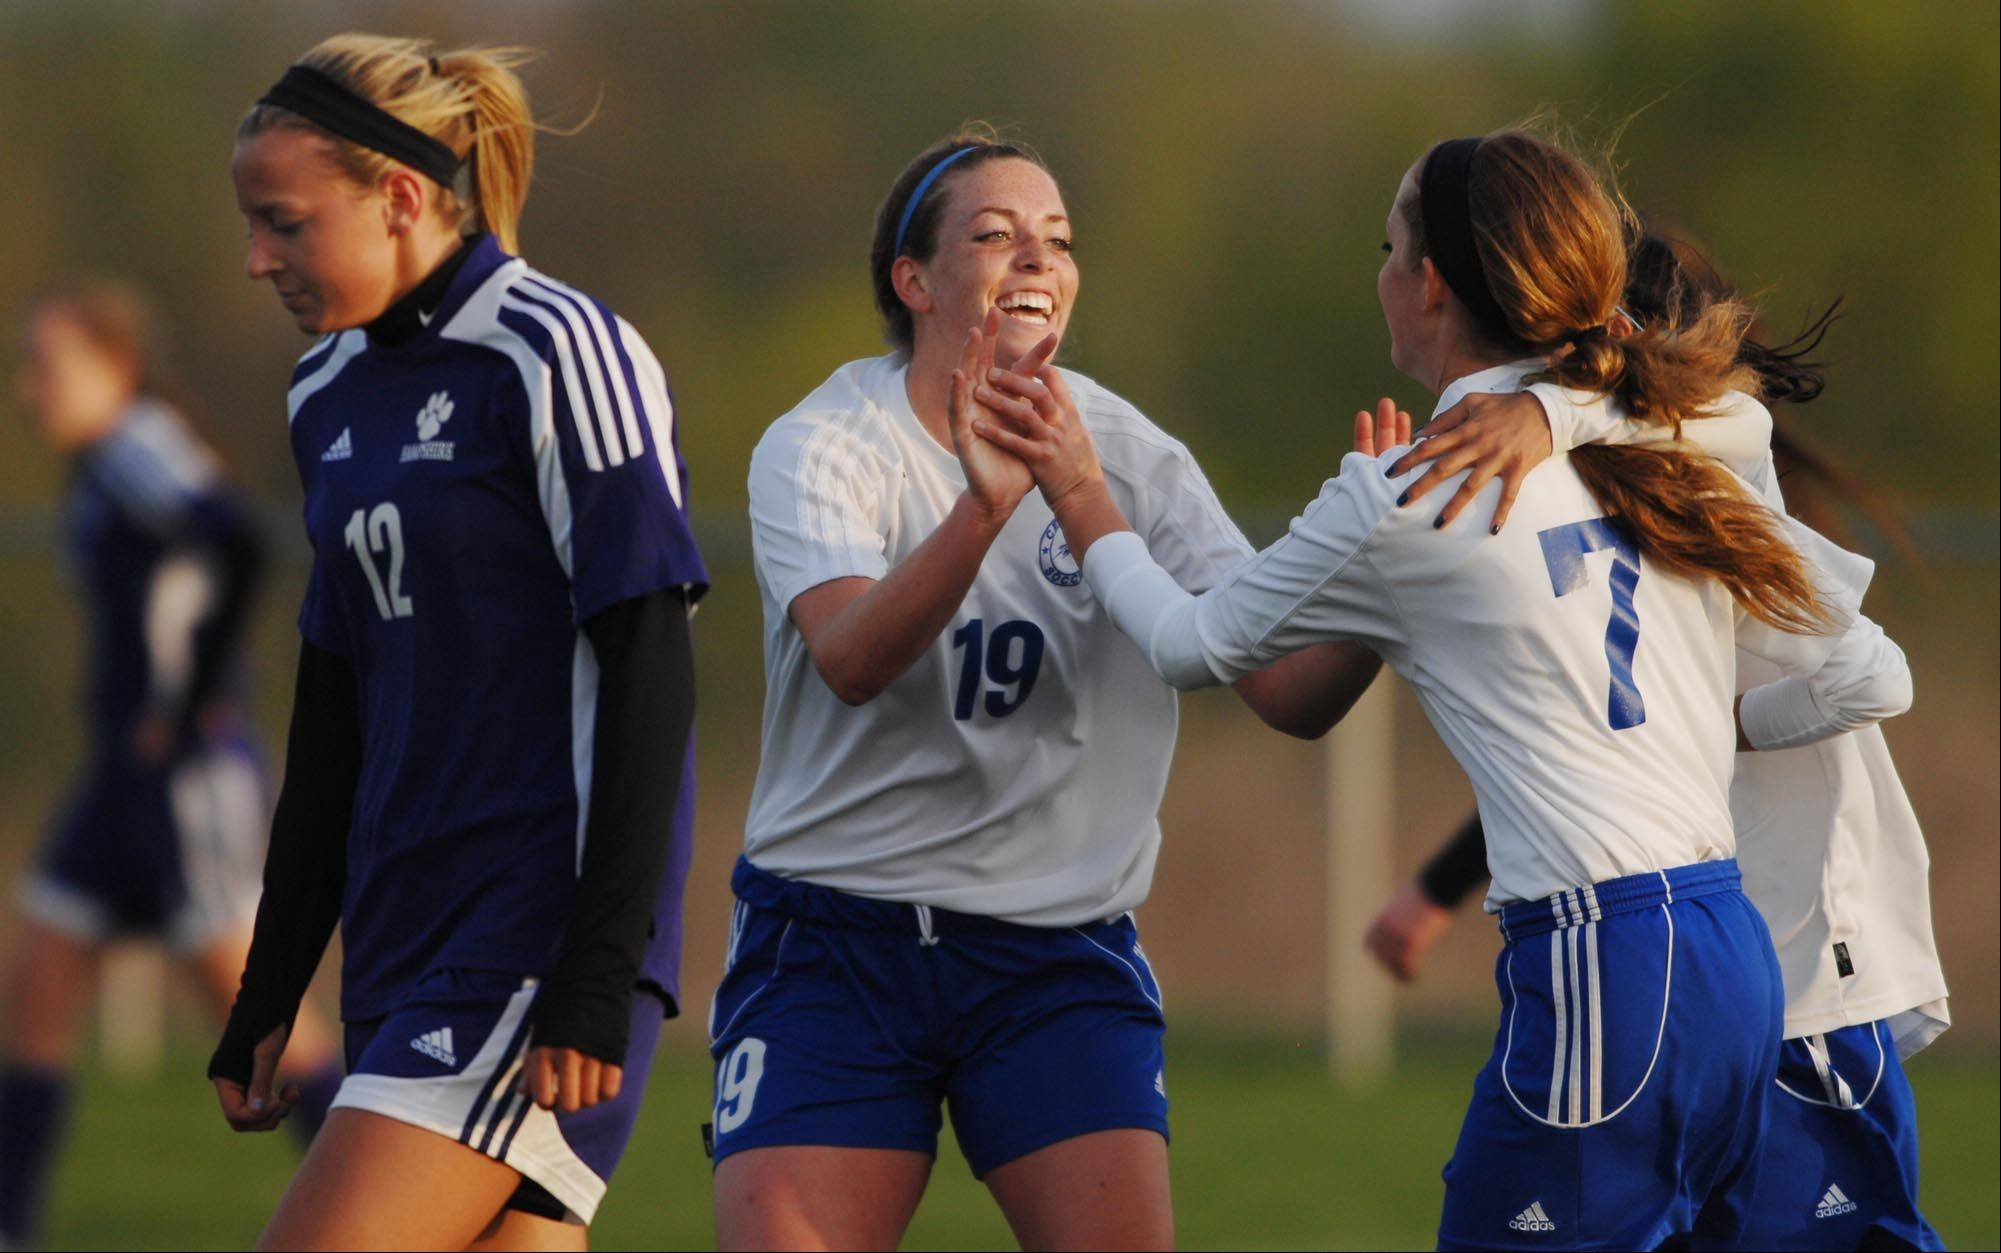 Burlington Central's Lindsey Puccio congratulates teammate Ellen Jayne after her goal as Hampshire's Natalie Starrenburg walks away Tuesday in Burlington.